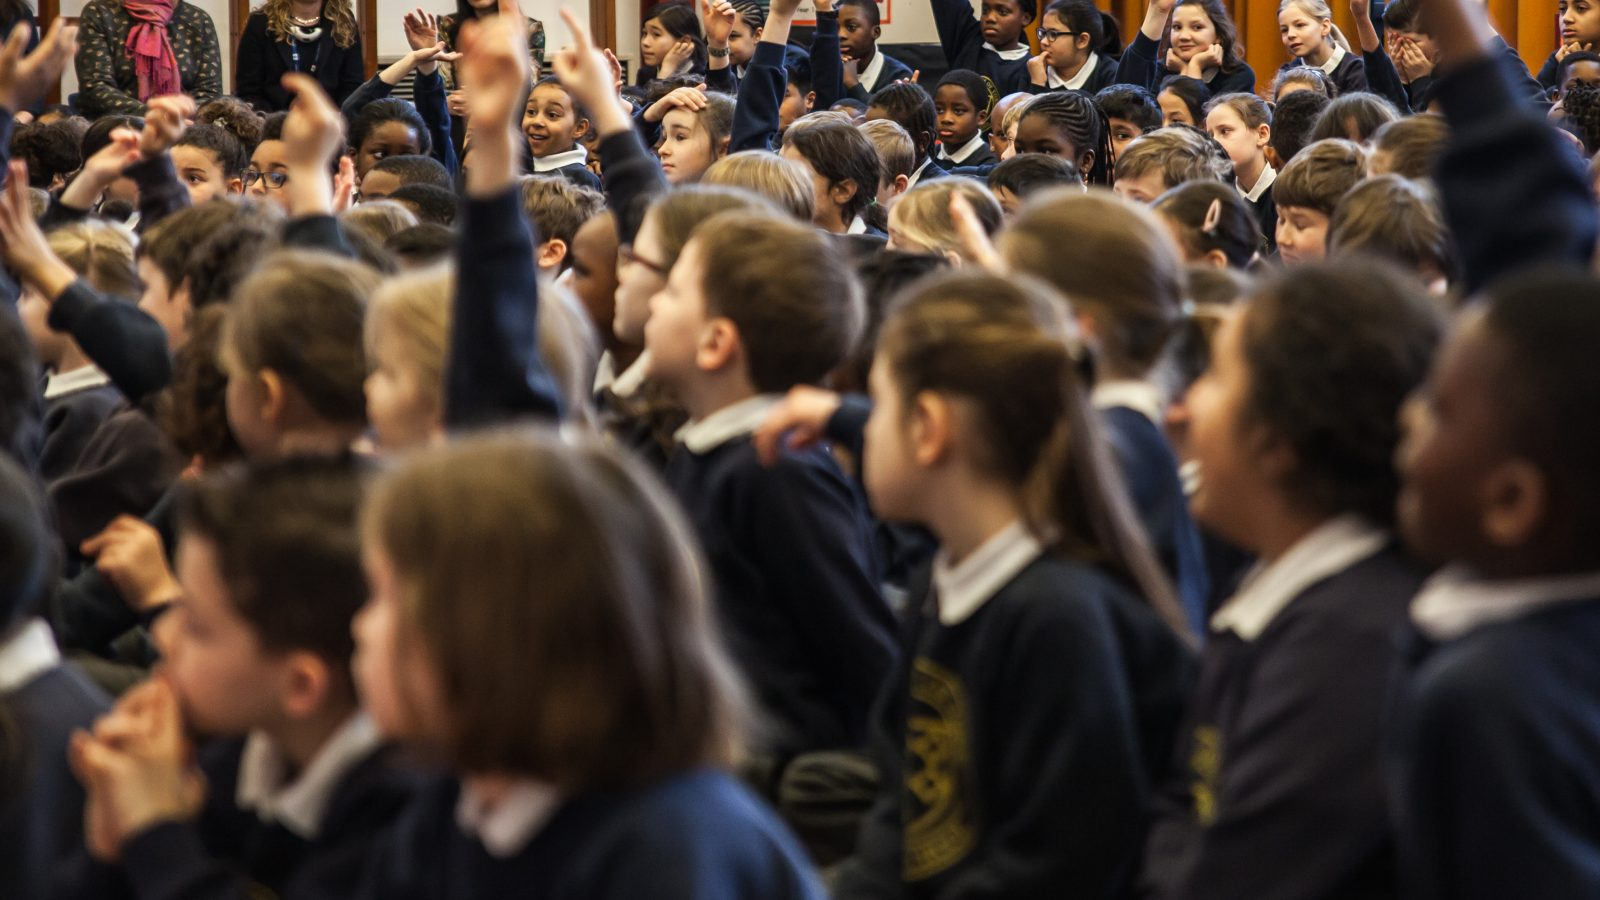 A school assembly. Lots of children with their hands up.